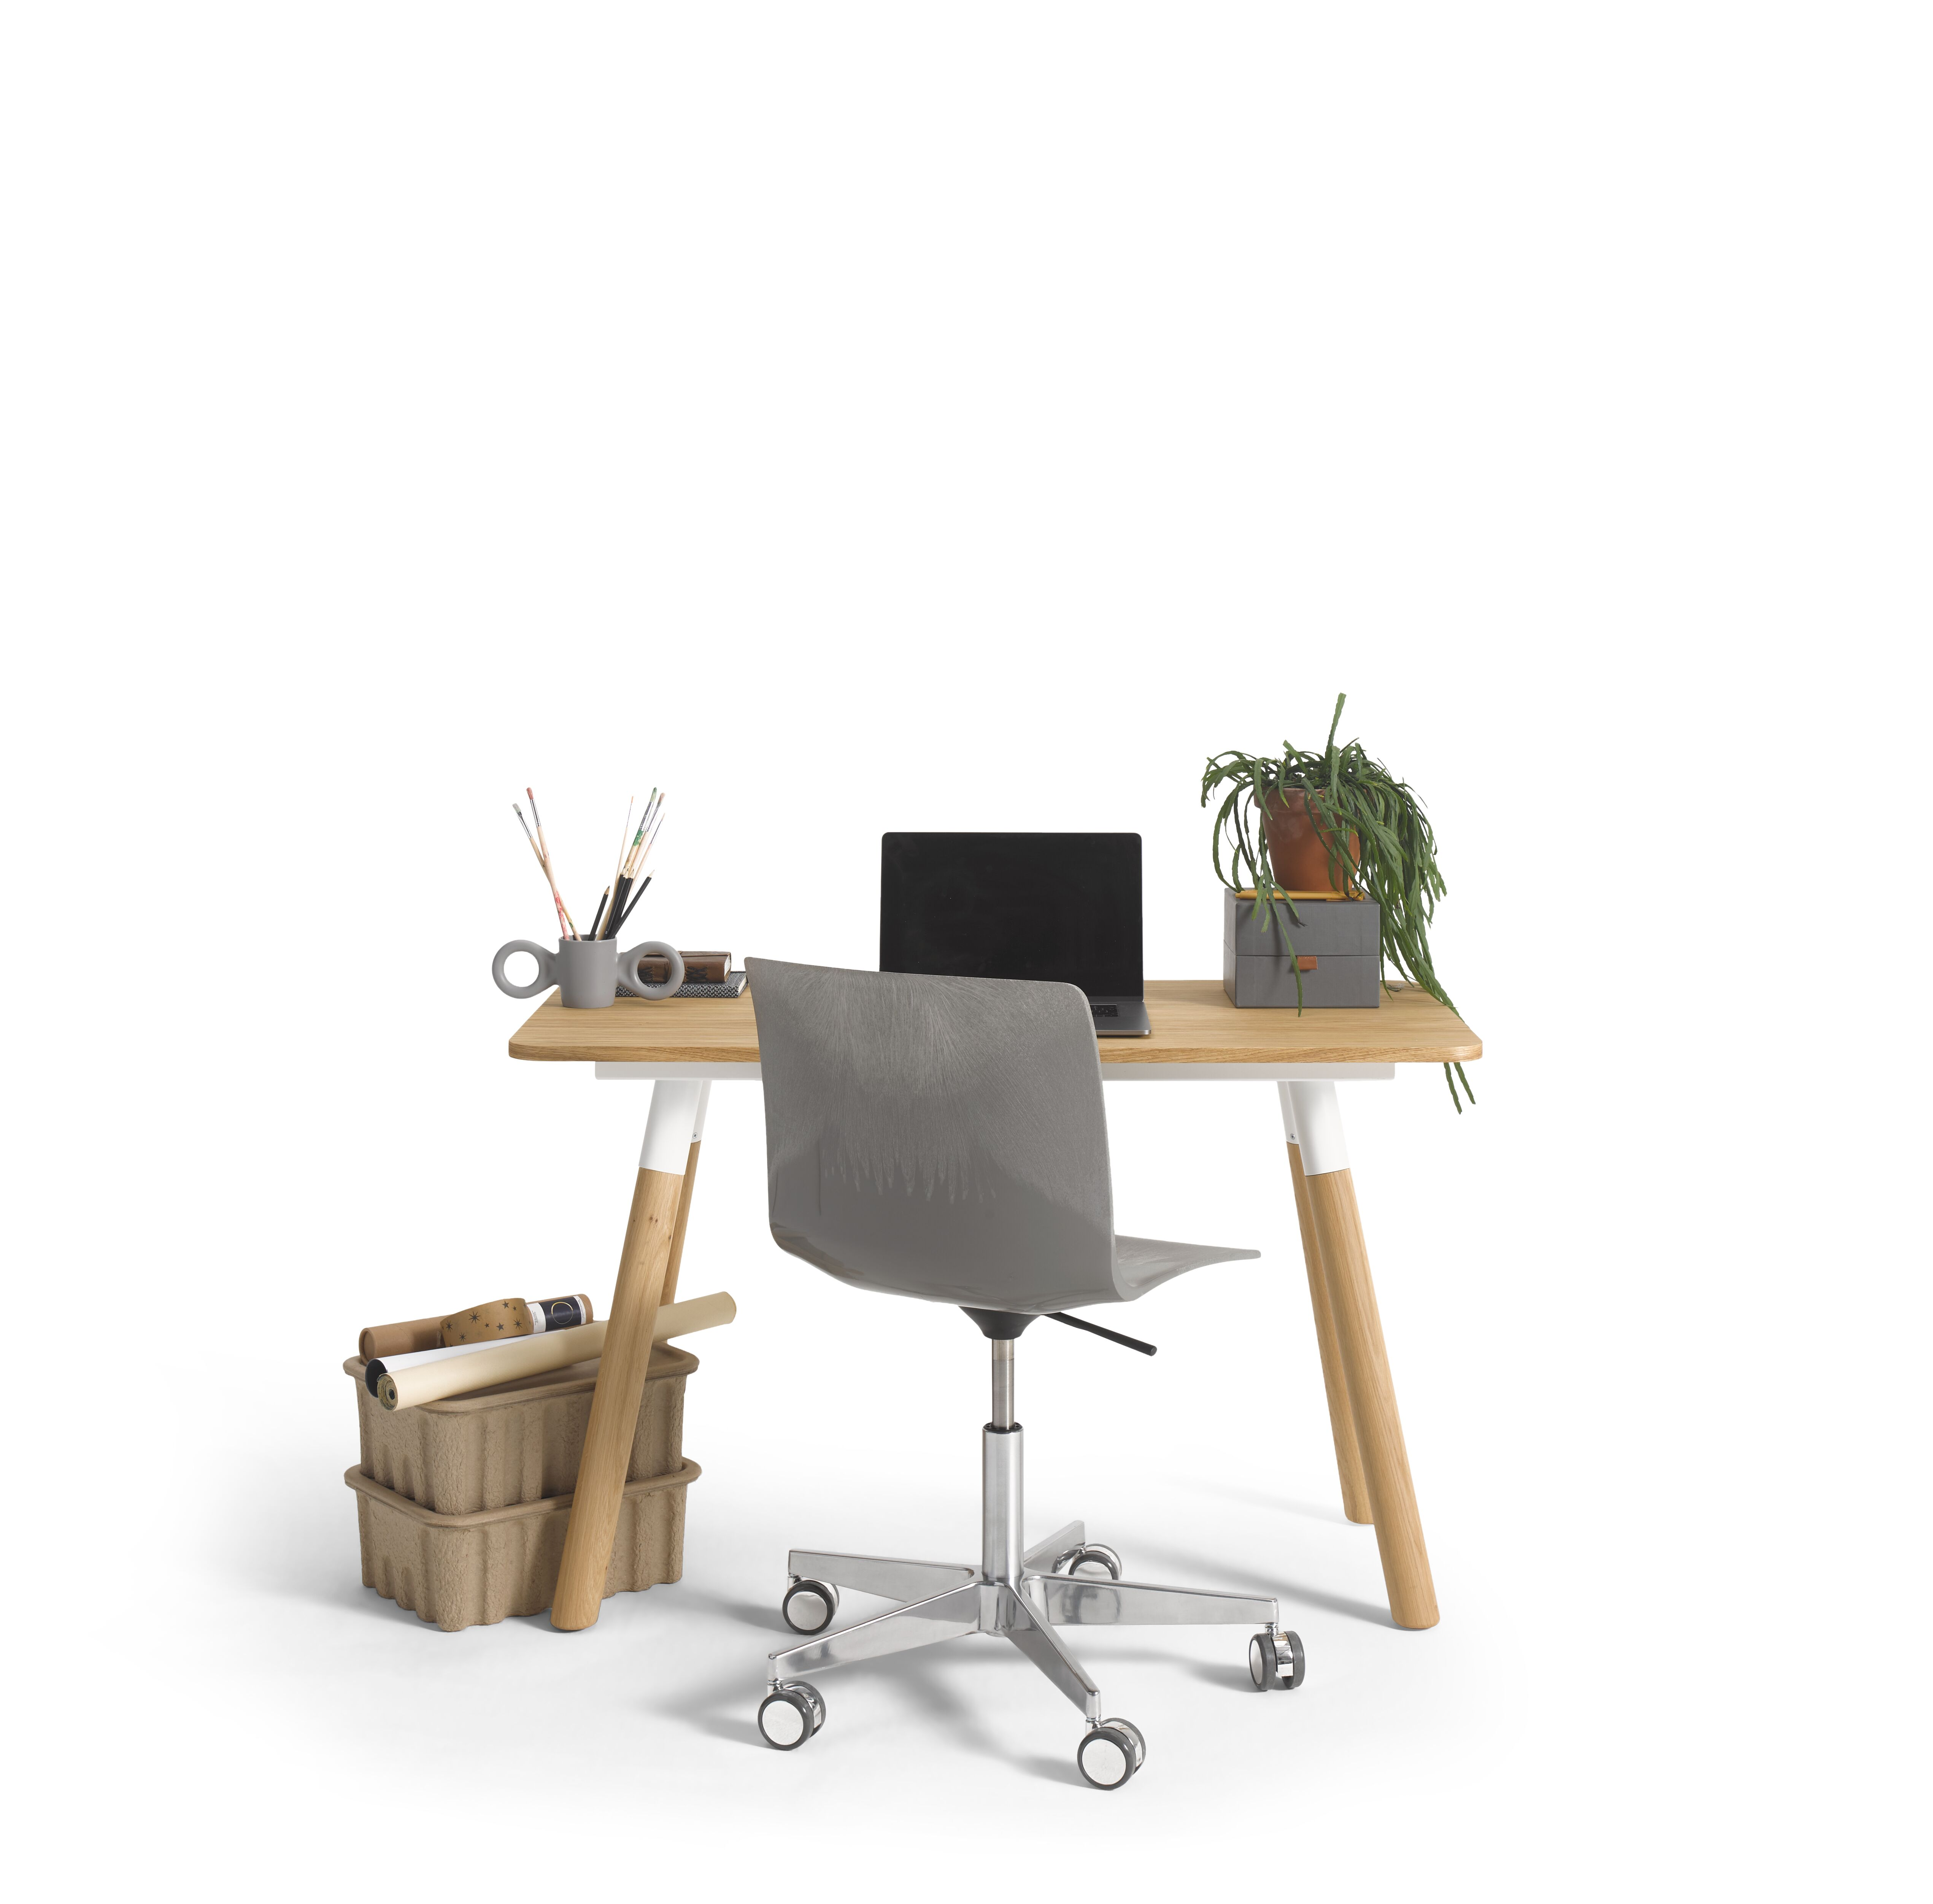 Gispen TEAM Wood round table with oak legs and tabletop and grey Nomi Work chair styled front view